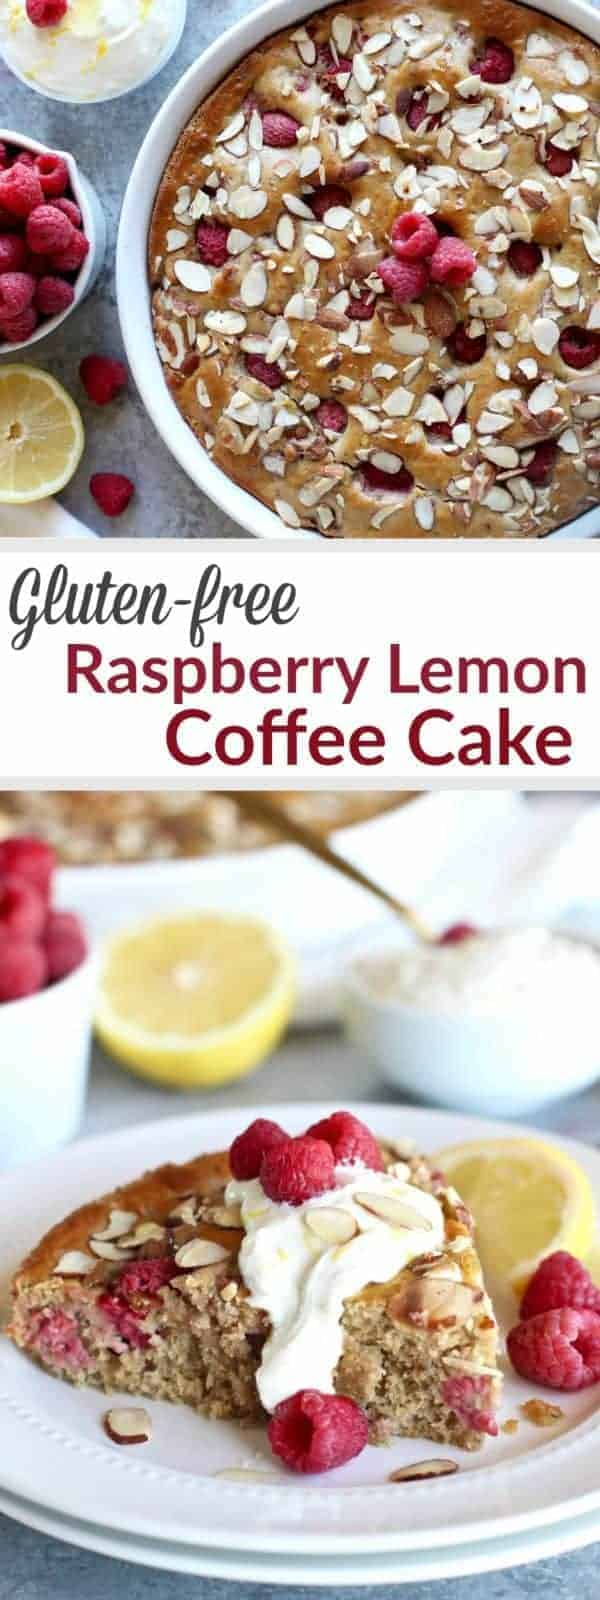 Pinterest image for Gluten-free Raspberry Lemon Coffee Cake